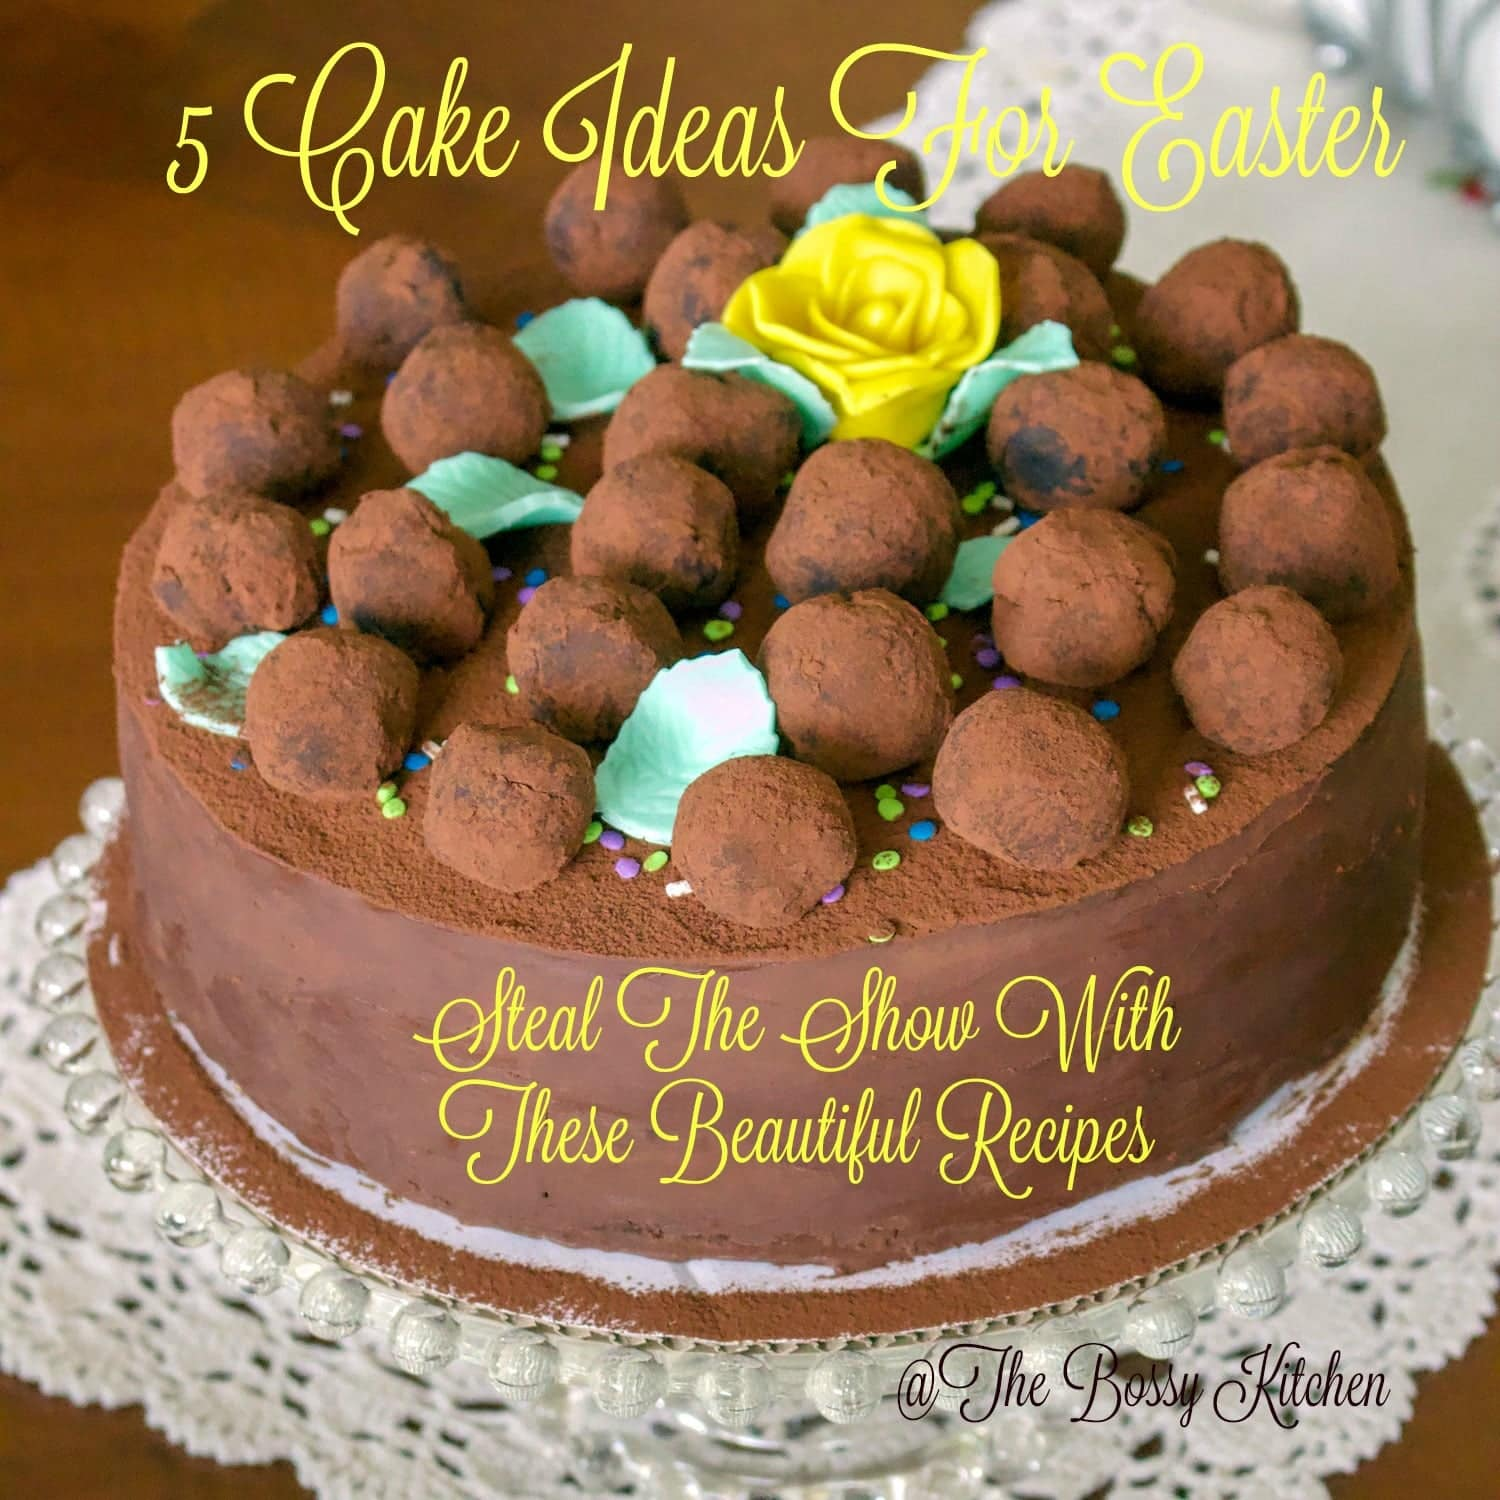 5 Cake Ideas For Easter- Steal the Show With These Beautiful Recipes- Go take a pick at this short list of recipes for cakes you could bake for this Easter. Easy recipes made from scratch that are delicious and great for this celebration.